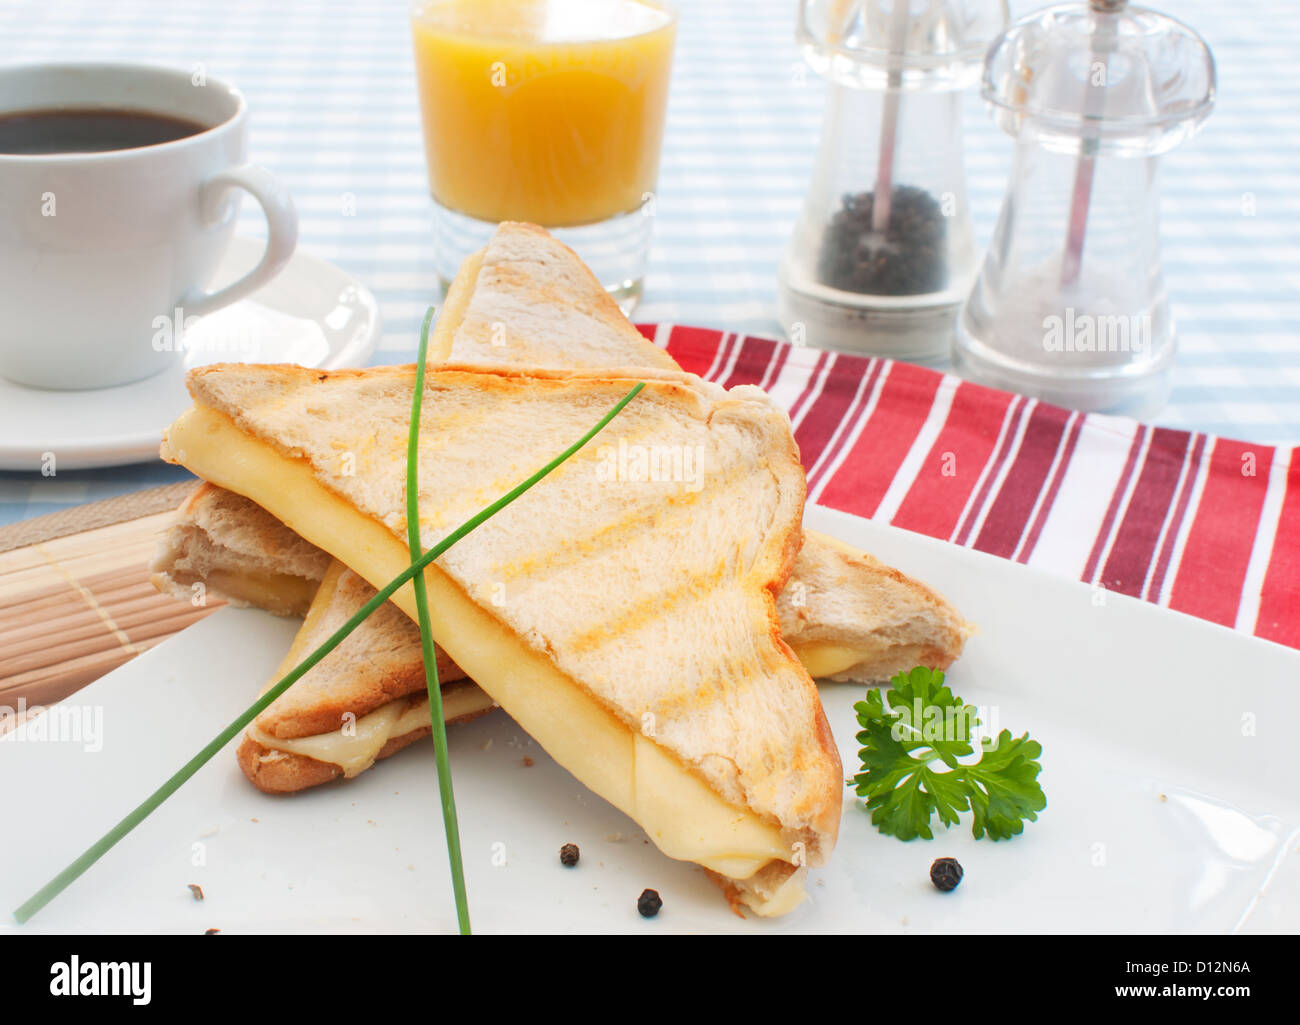 Toasted sandwich - Stock Image